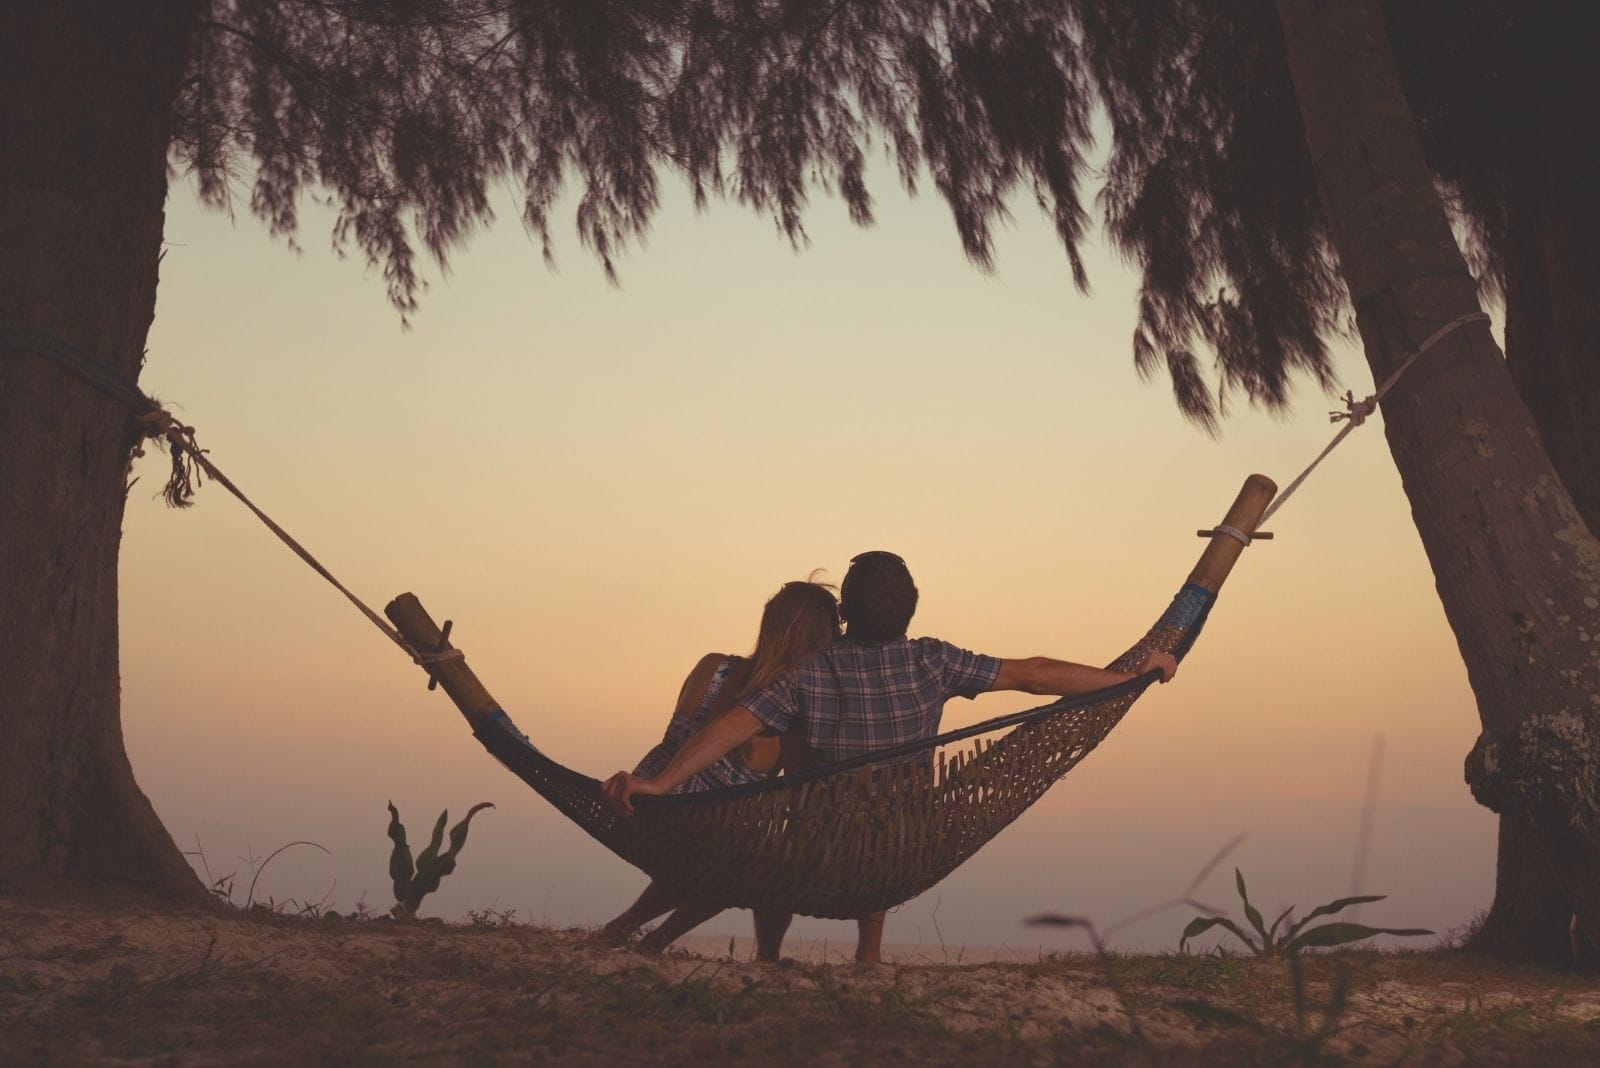 couple relaxing in a hammock hanged on trees facing the clouds on golden hour